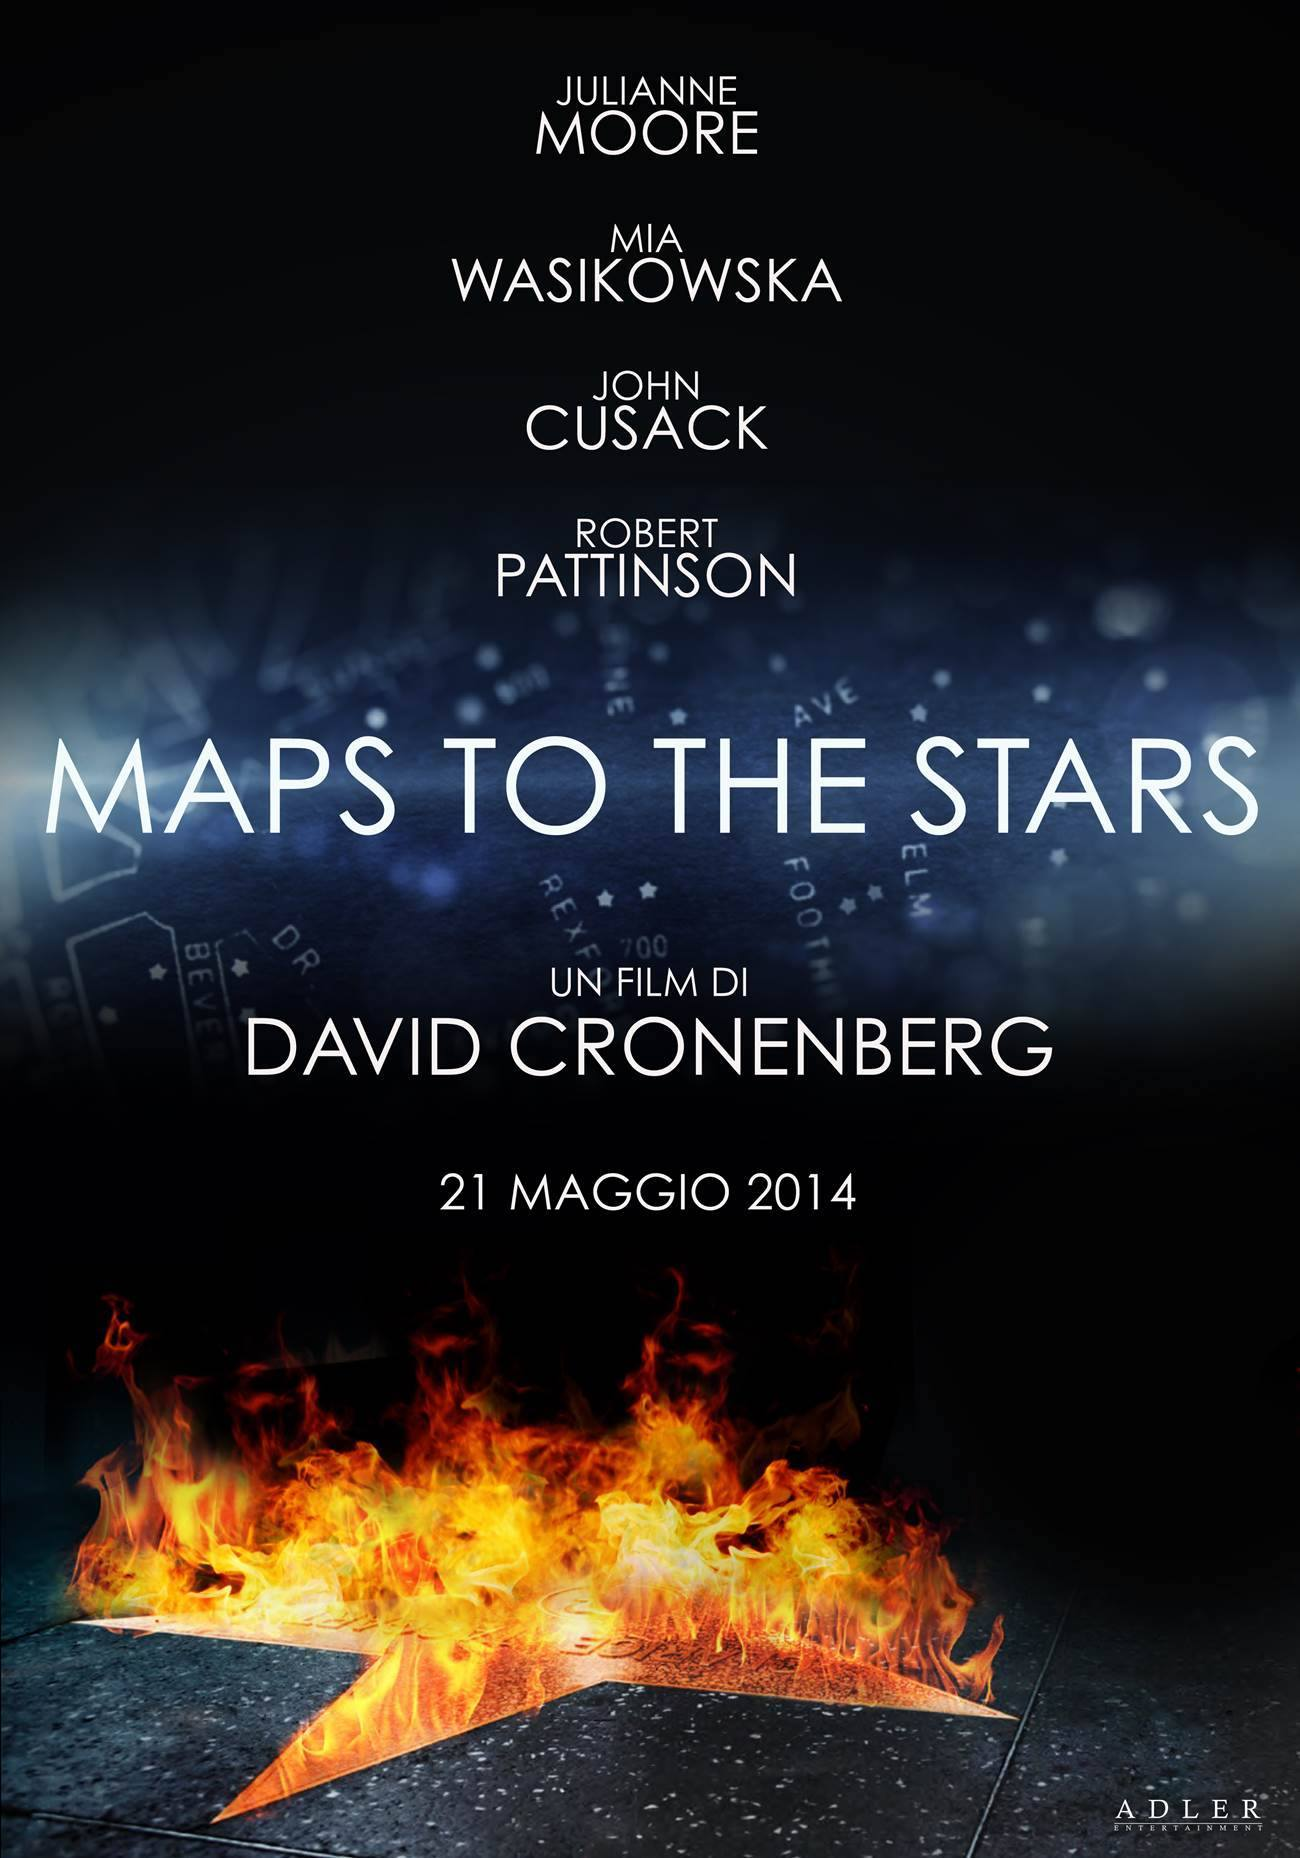 Maps to the Stars-Official Poster Banner PROMO XXLG-15ABRIL2014